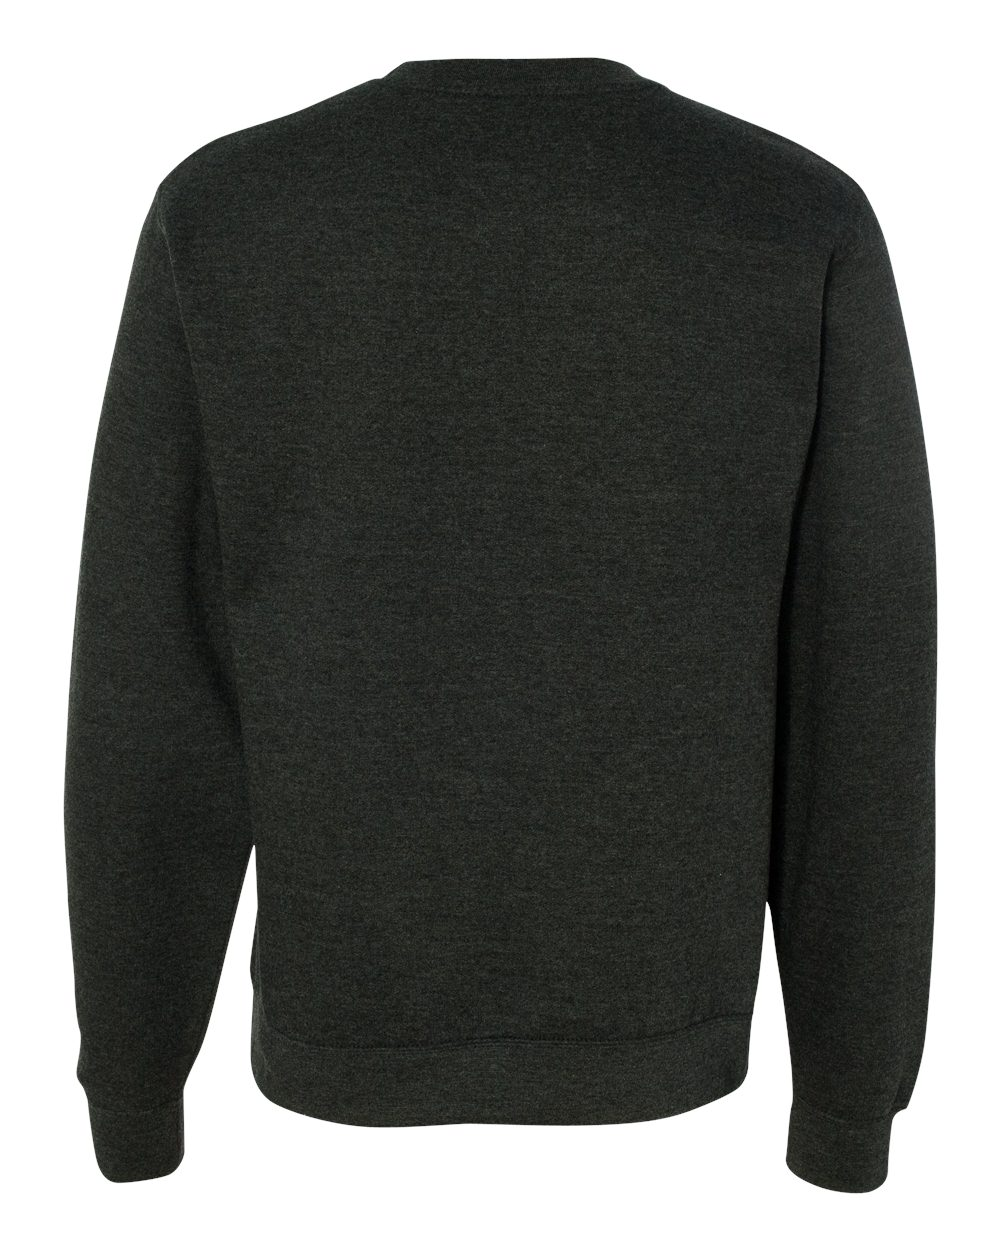 Independent-Trading-Co-Midweight-Crewneck-Sweatshirt-SS3000-up-to-3XL miniature 13